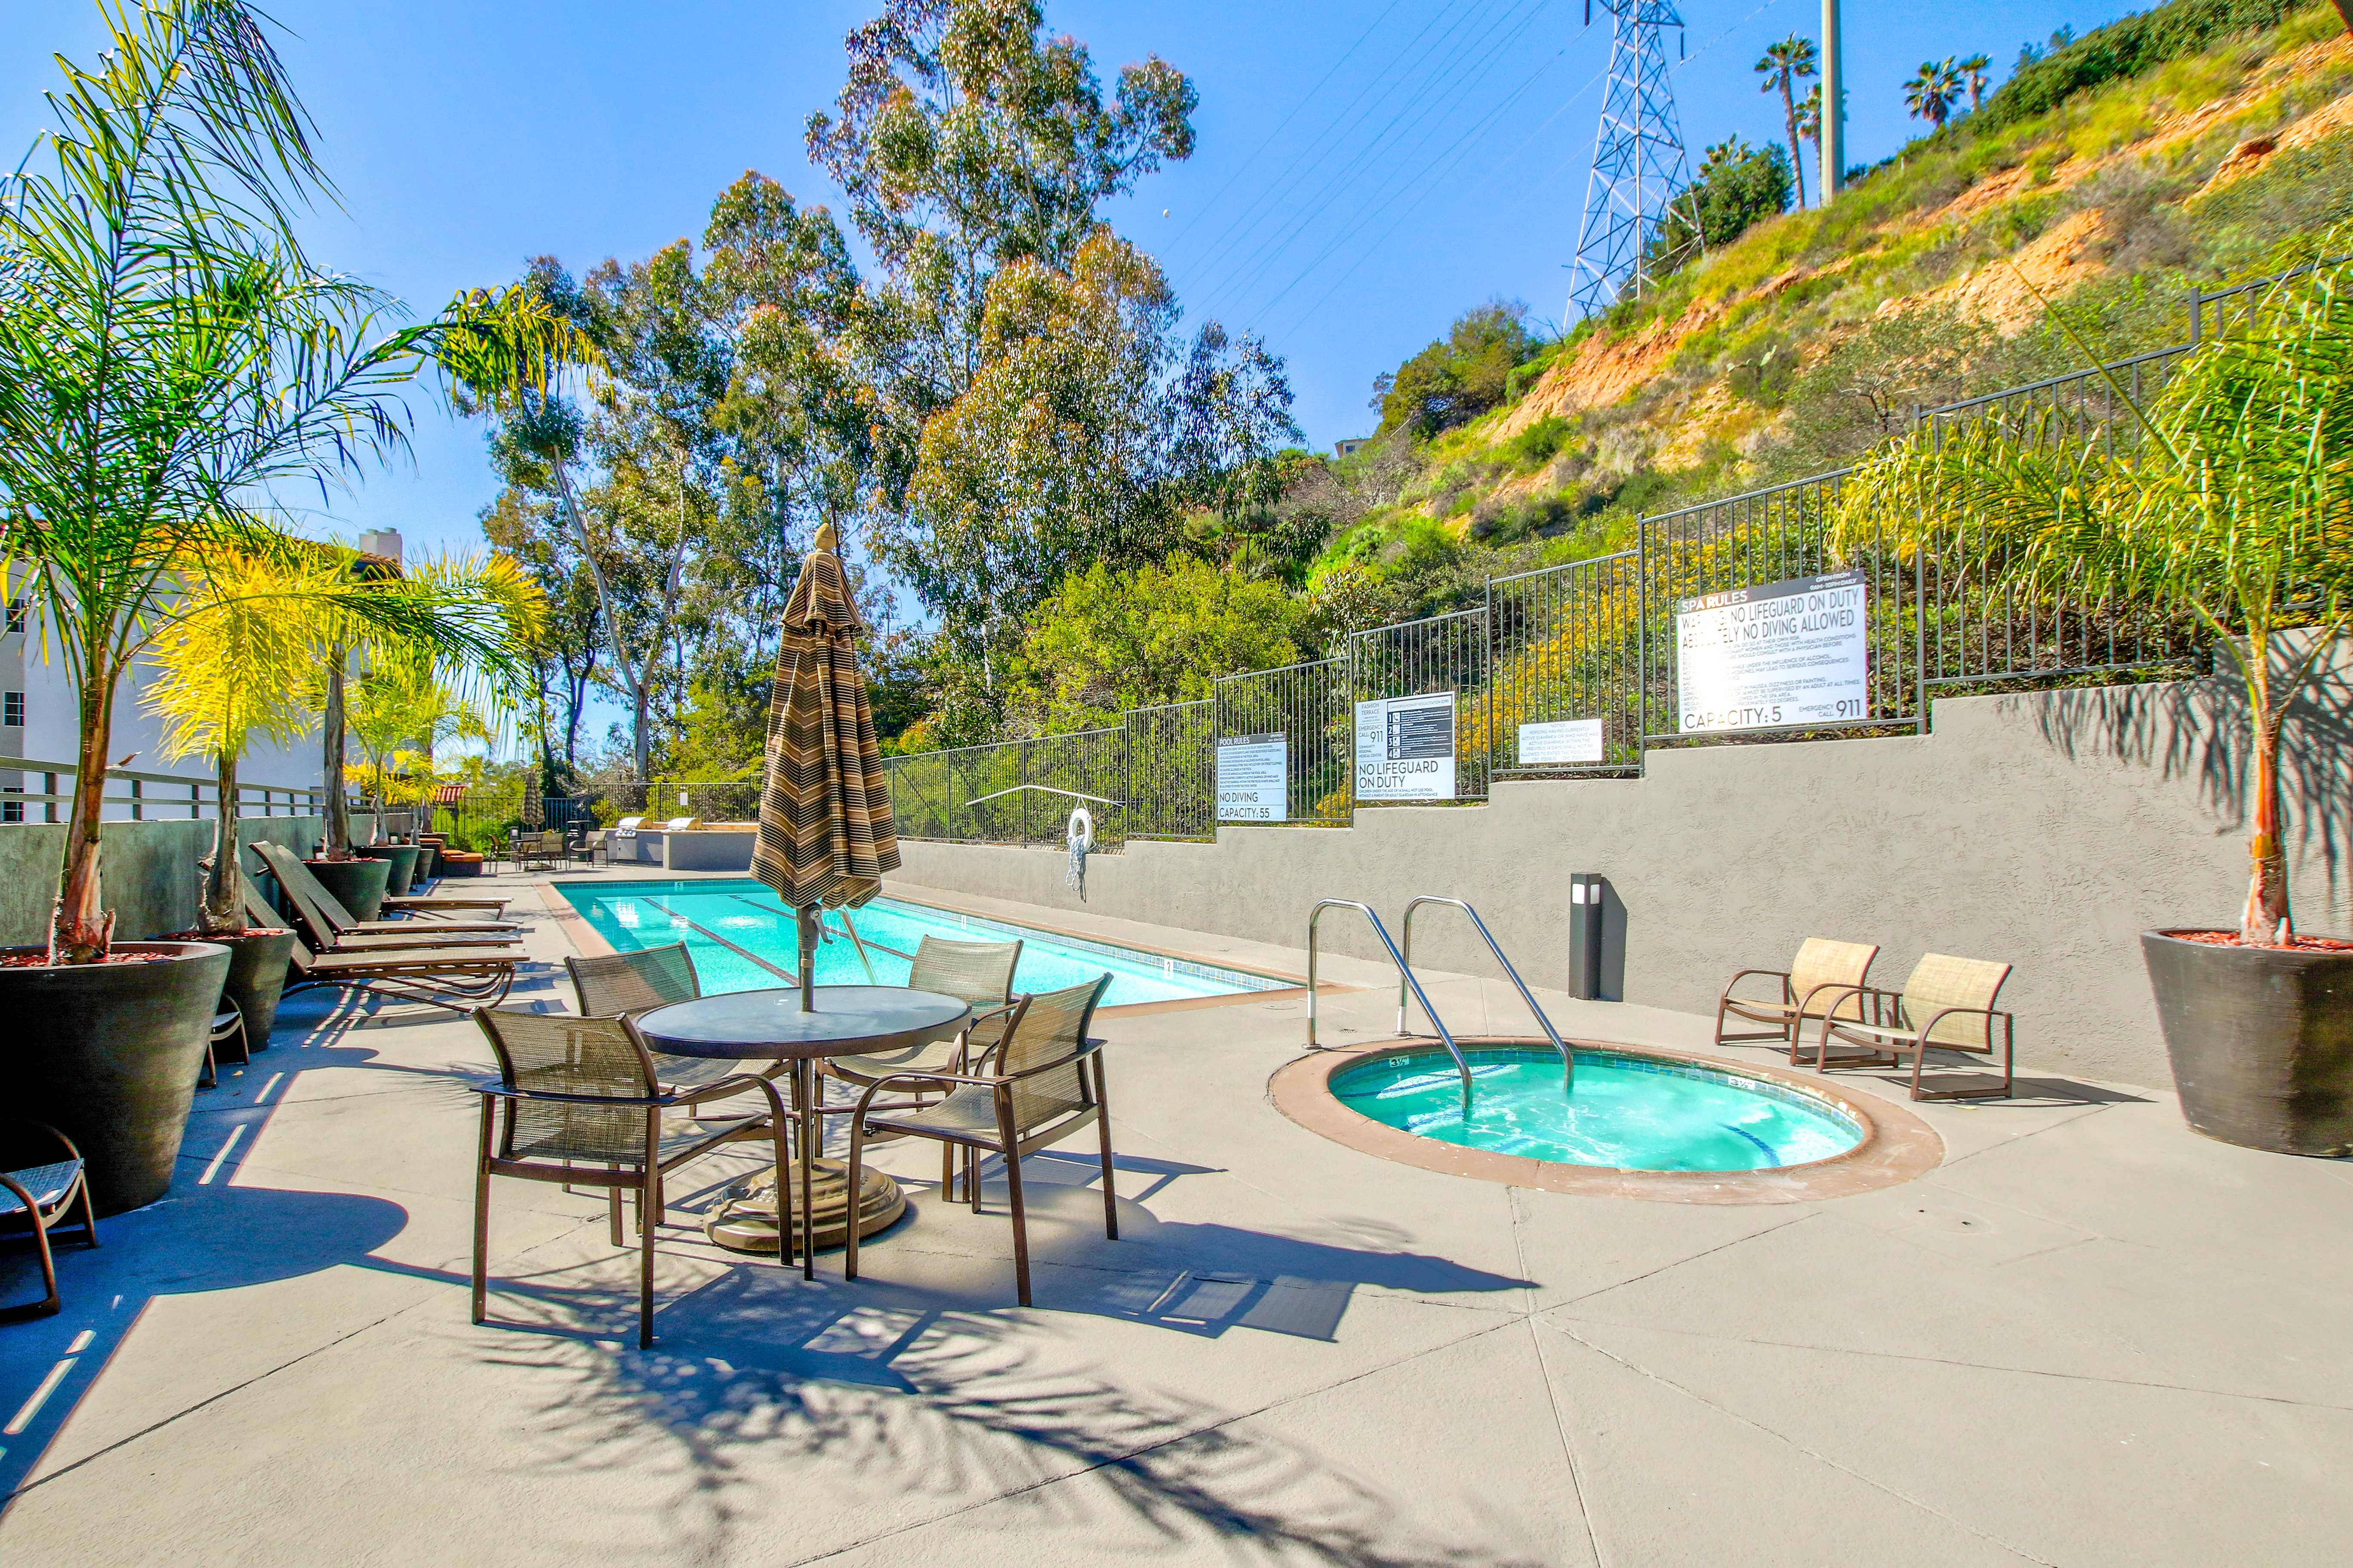 Outdoor pool and hot tub at apartments in San Diego, California